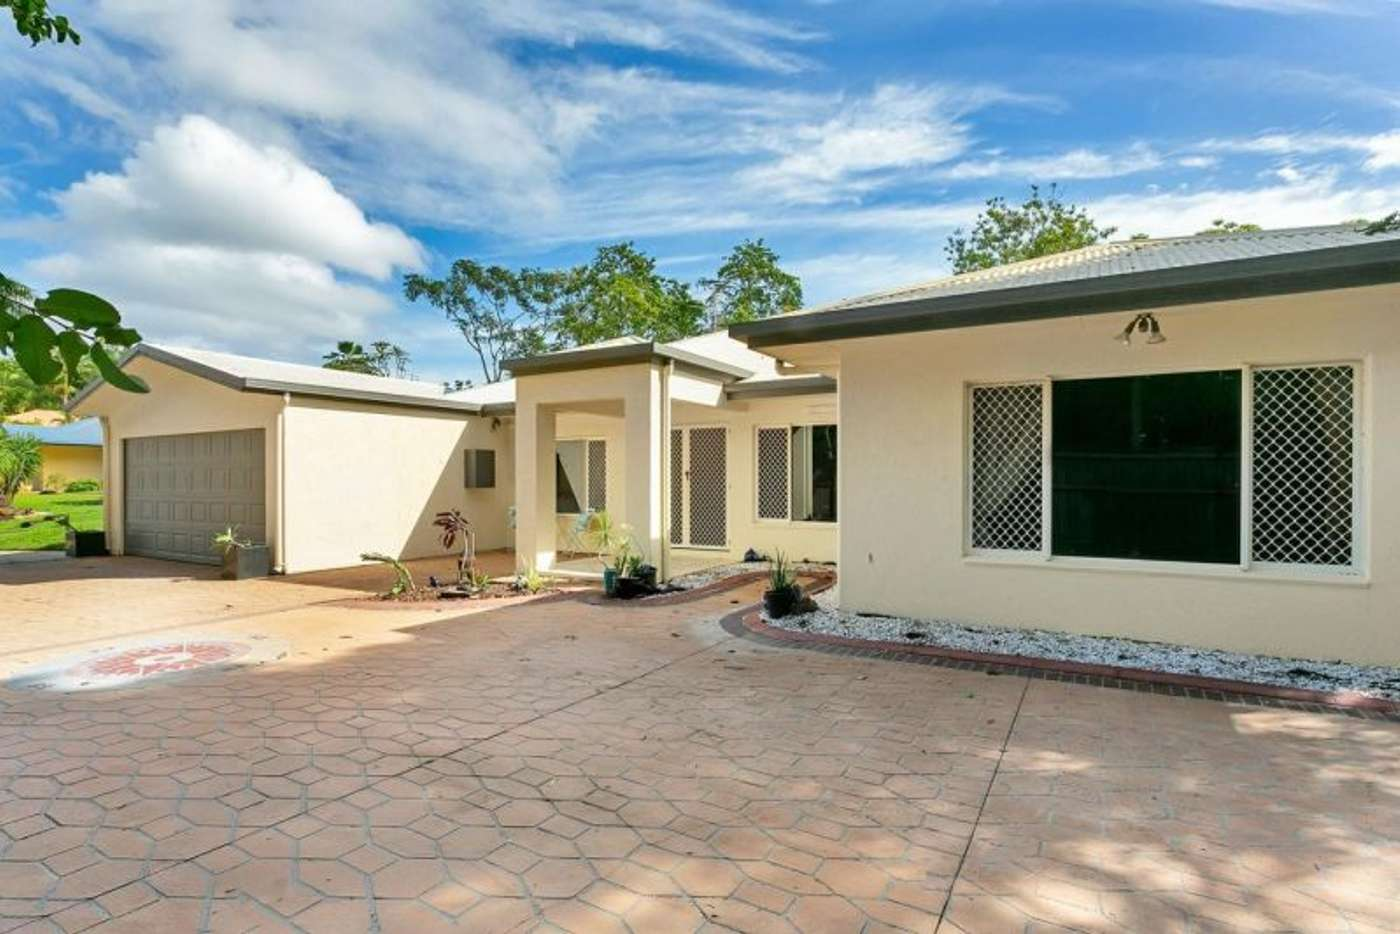 Main view of Homely house listing, 31 Tradewinds Close, Redlynch QLD 4870